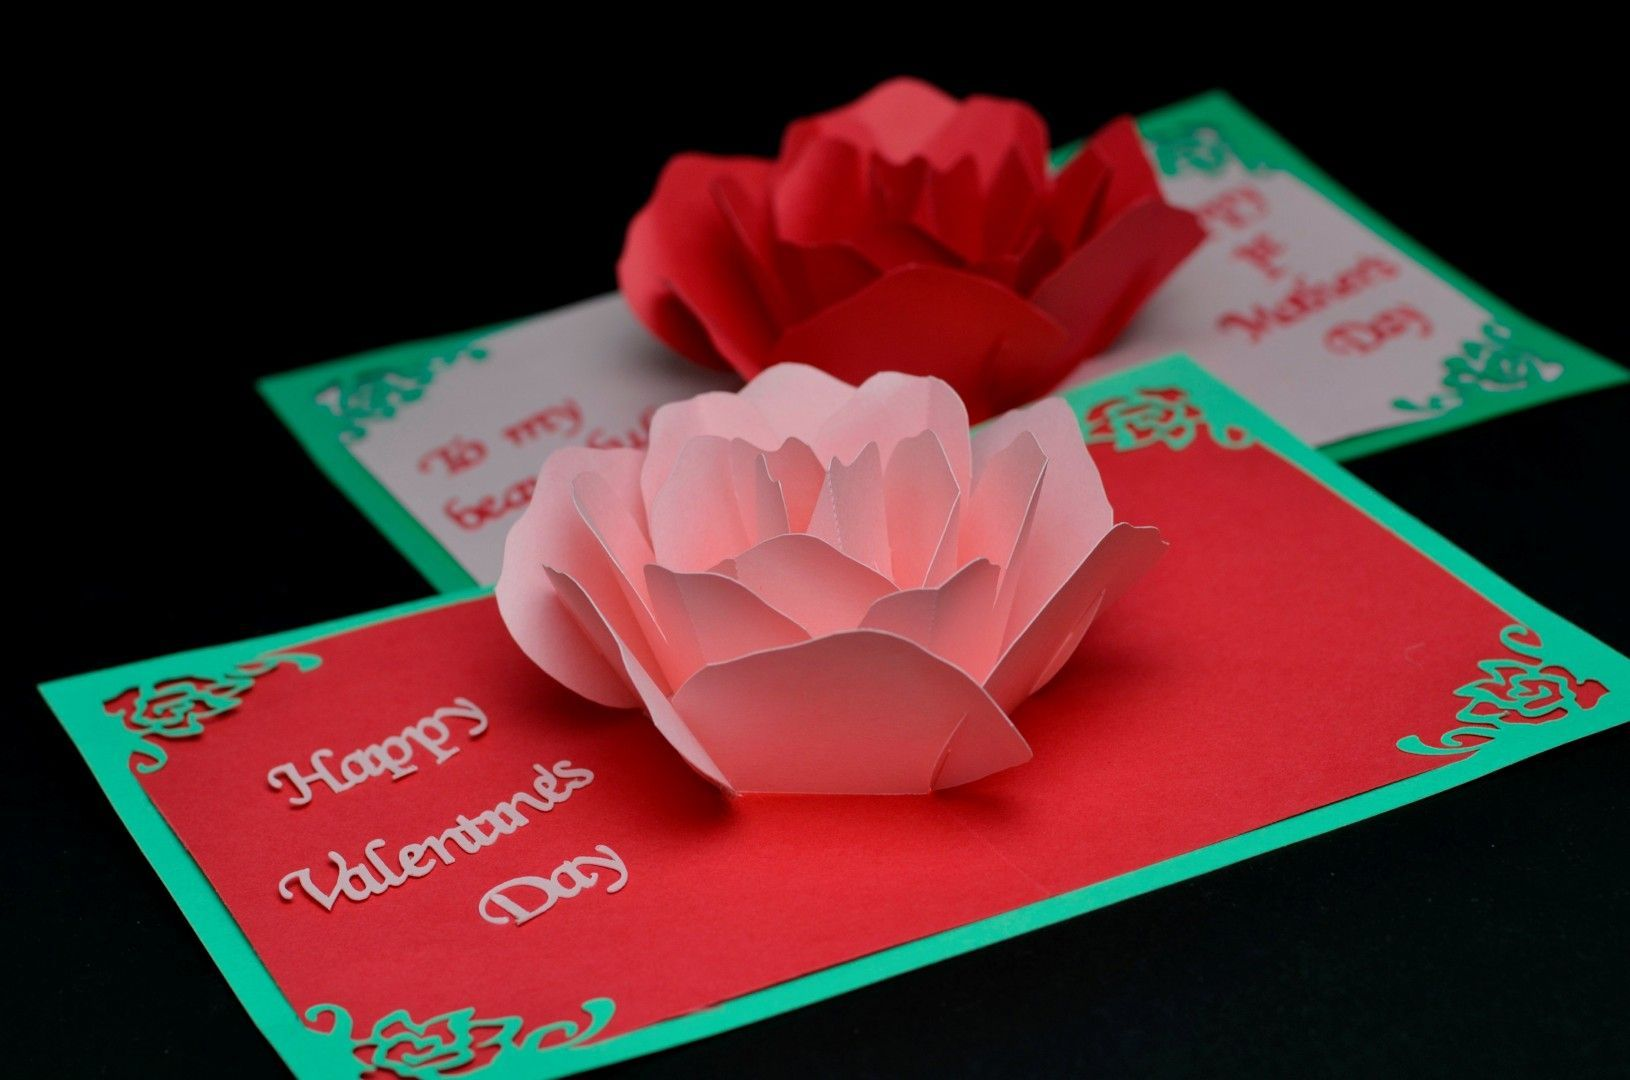 The Remarkable Valentine S Day Card Rose Pop Up Card Revisited Pop Up In Diy Pop Up Cards Temp In 2020 Pop Up Card Templates Diy Pop Up Cards Pop Up Valentine Cards